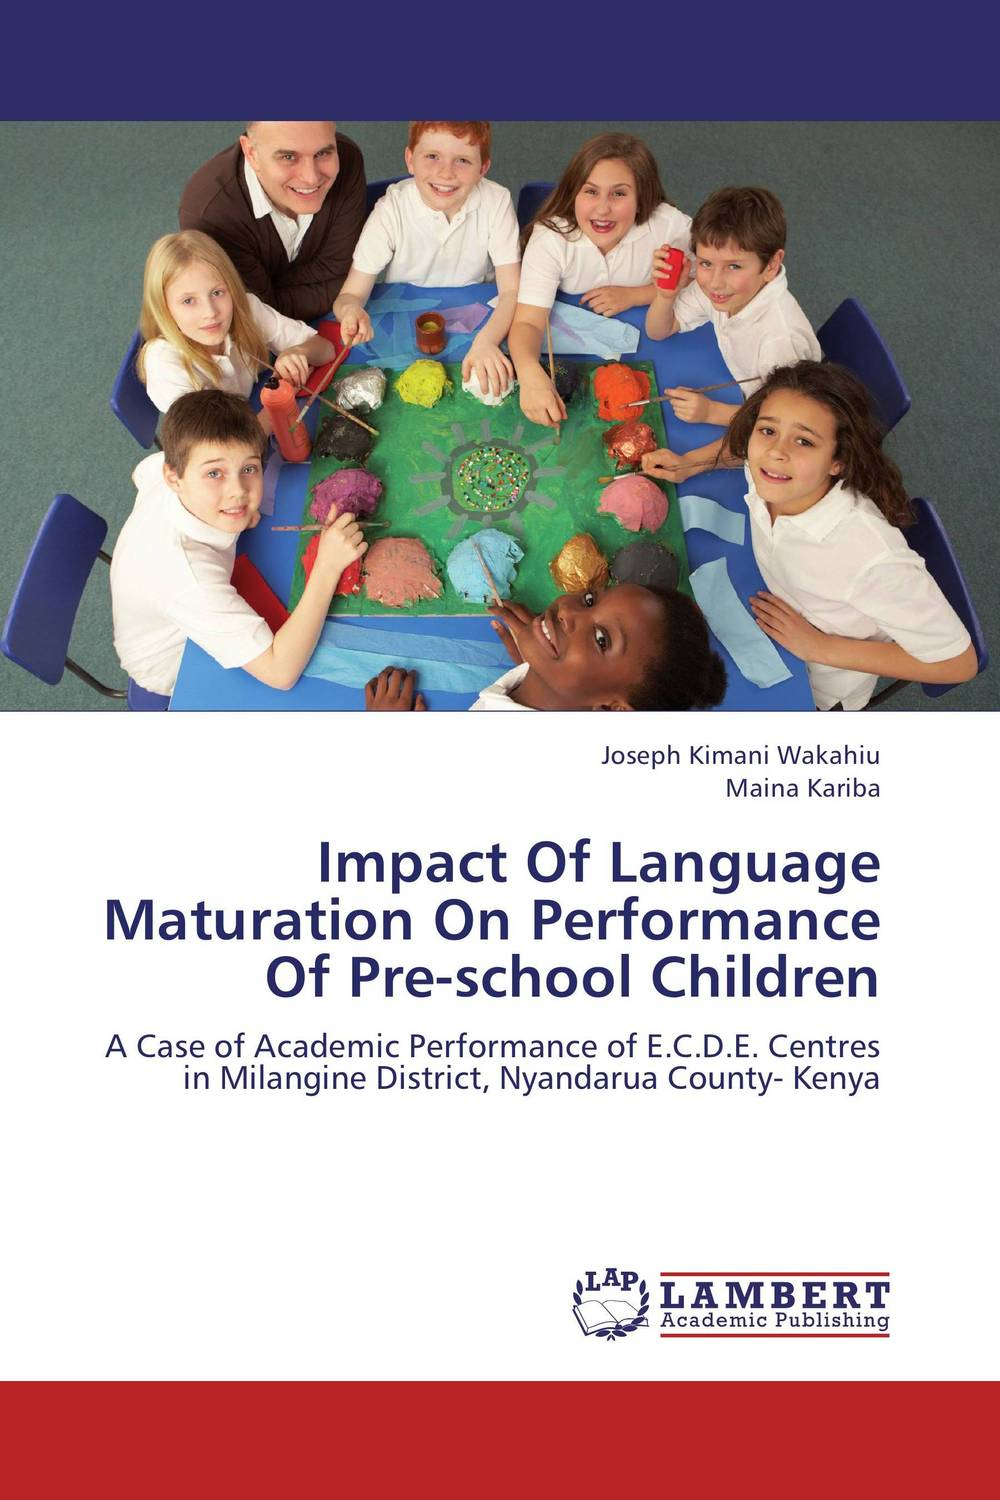 купить Impact Of Language Maturation On Performance Of Pre-school Children недорого